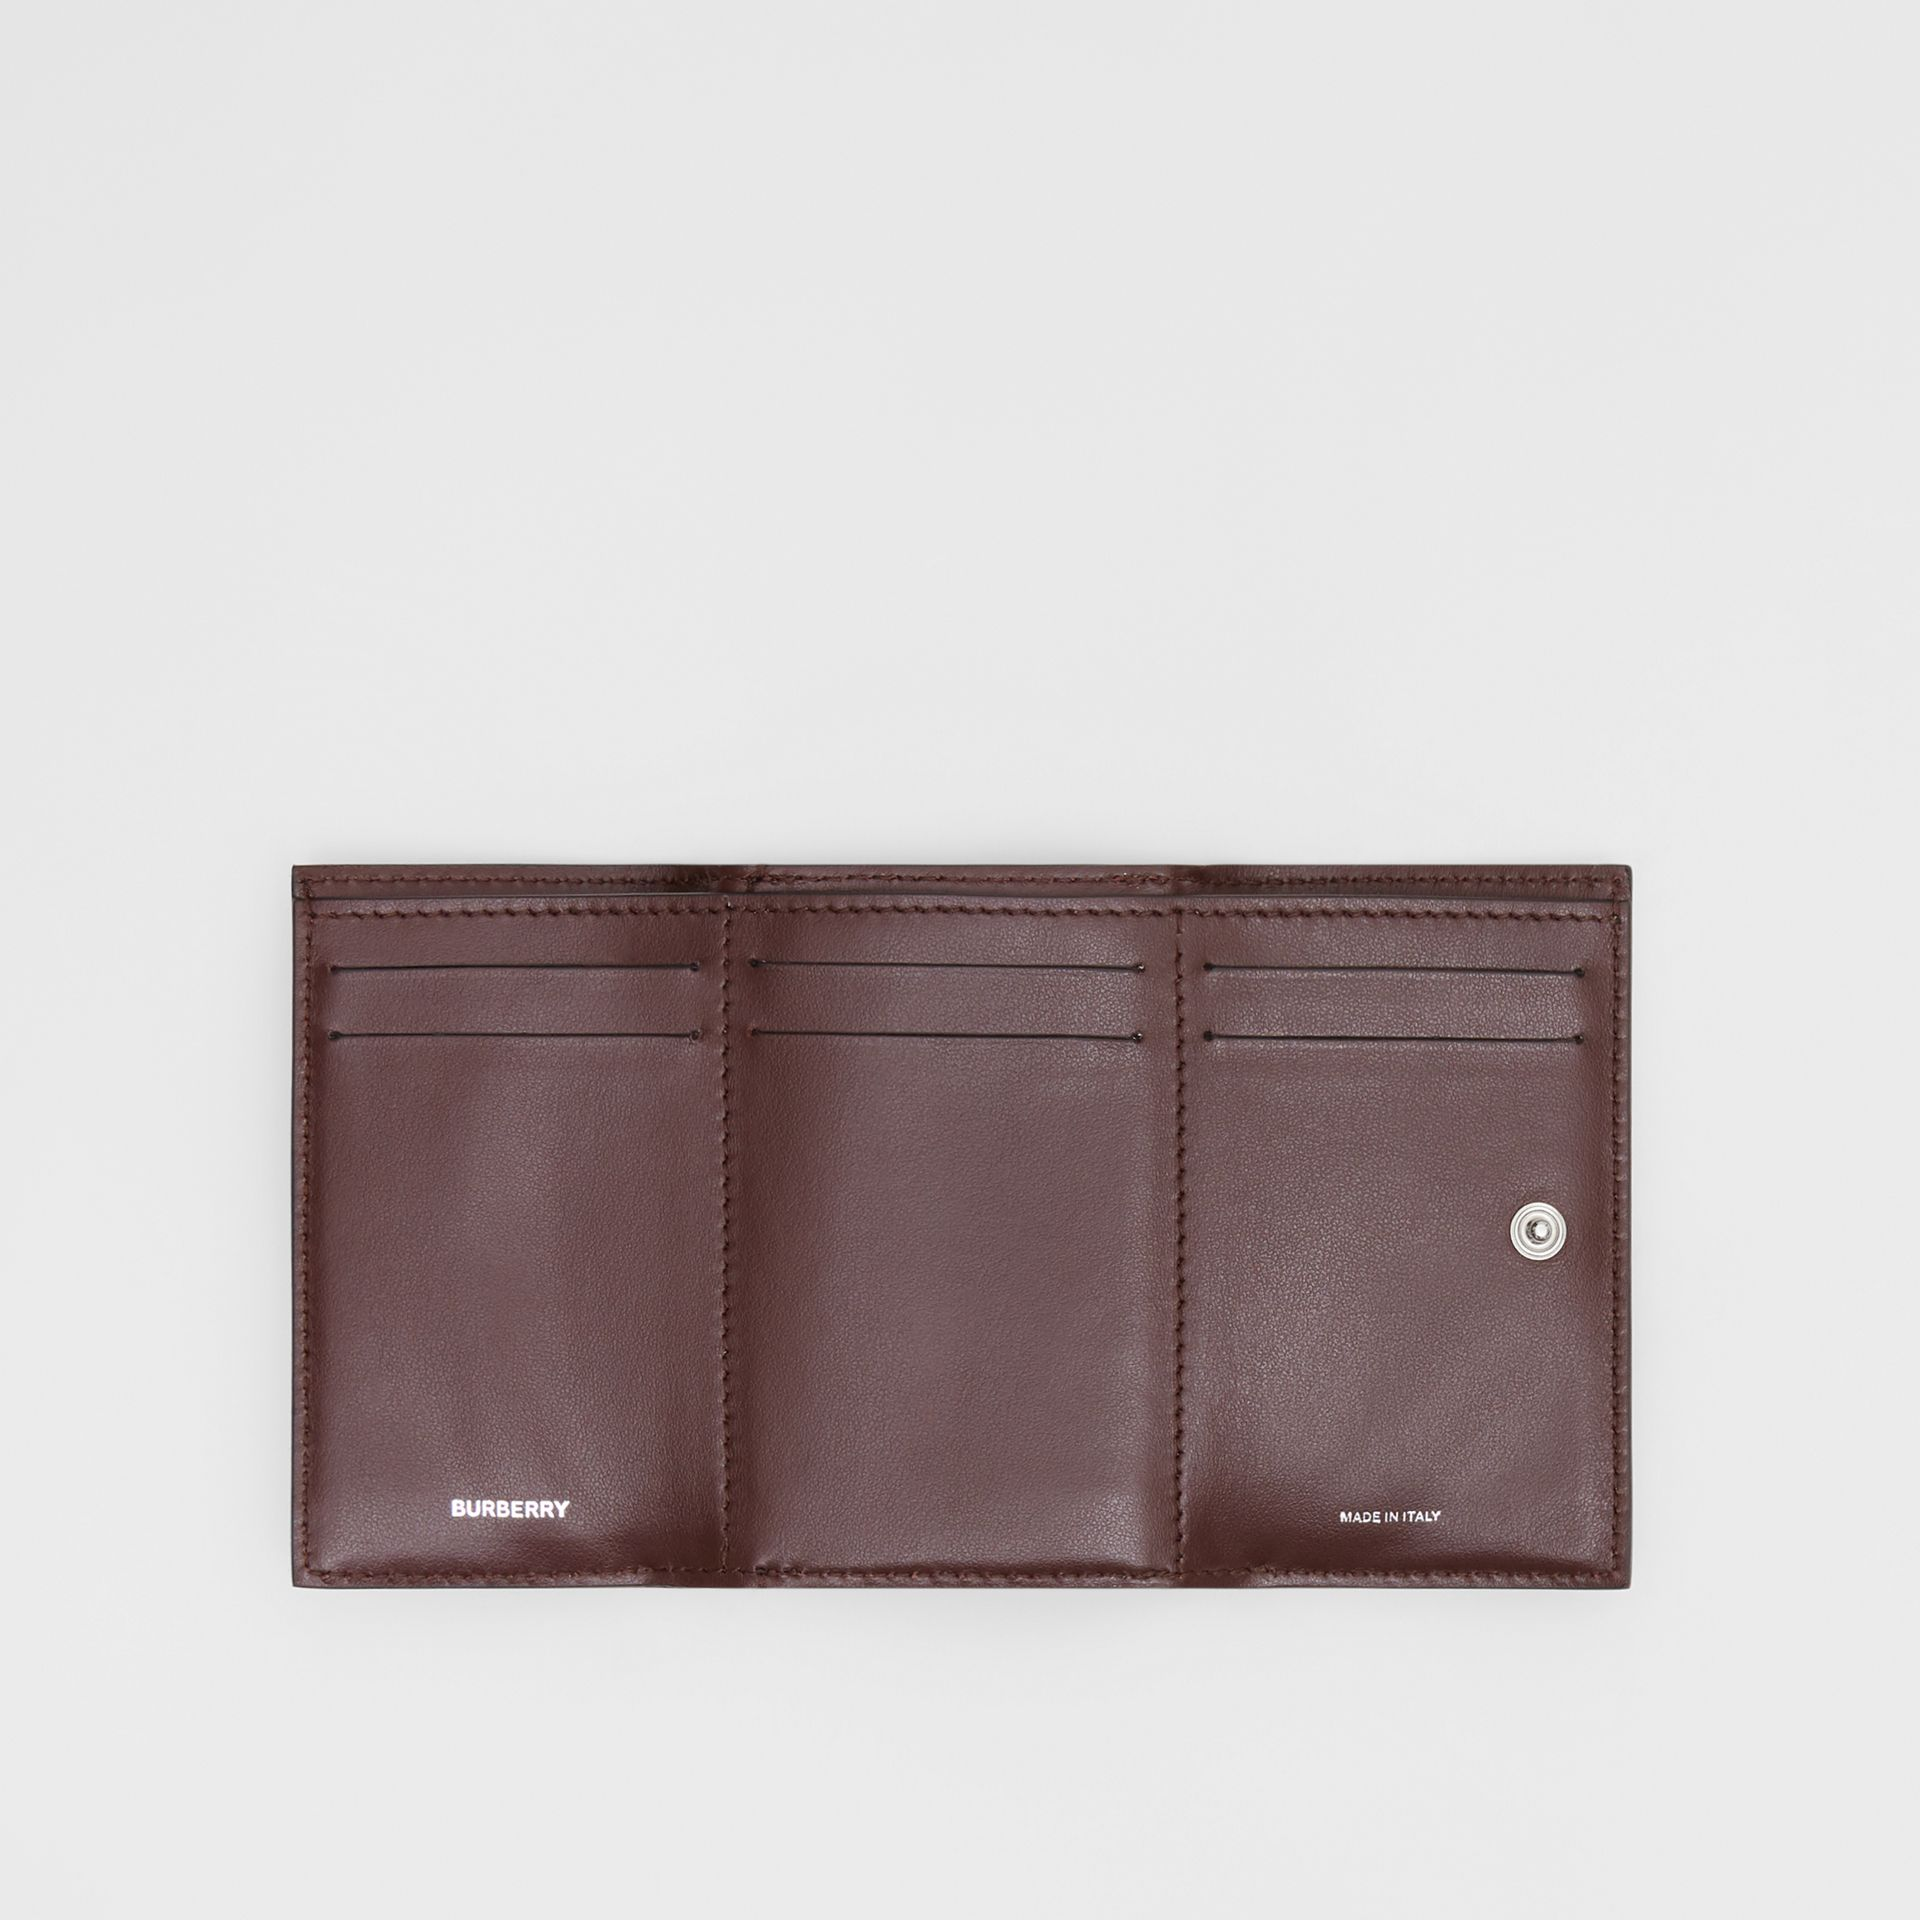 Small Cow Print Leather Folding Wallet in Malt Brown - Women | Burberry - gallery image 5